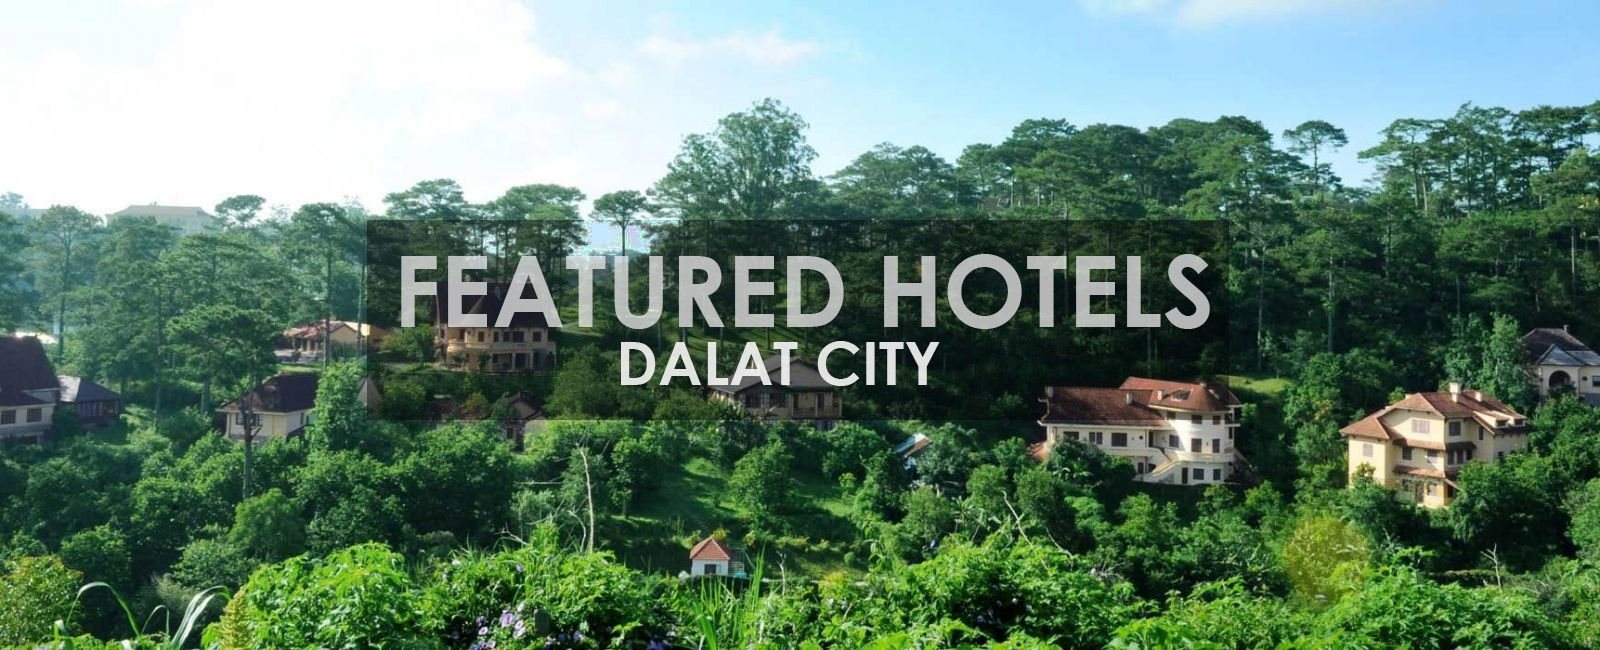 Featured Hotels Dalat City